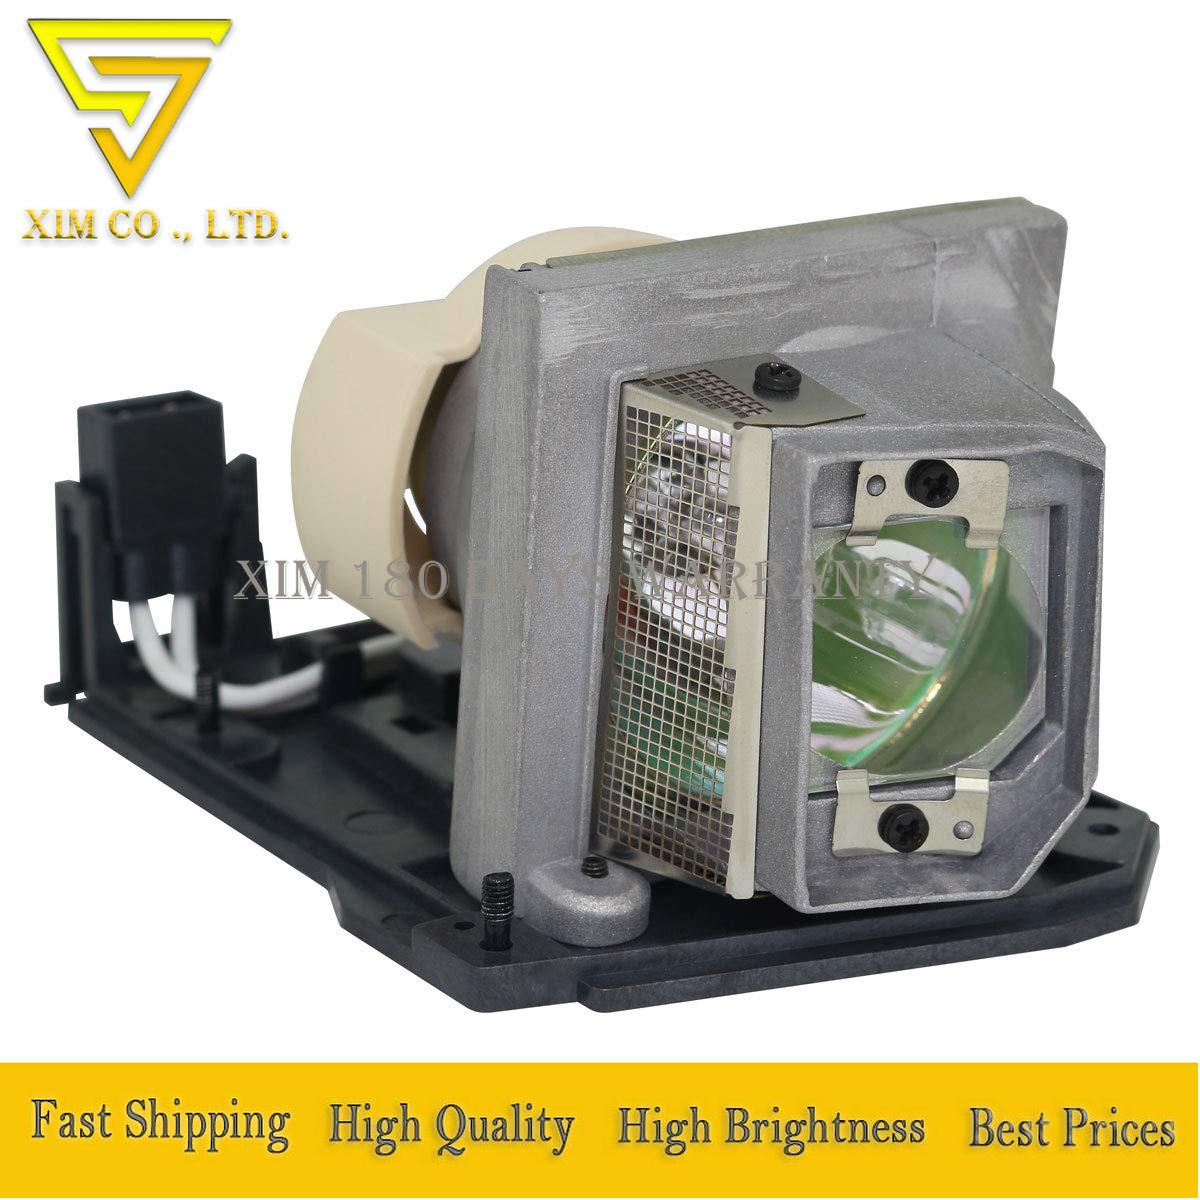 BL-FP230F/SP.8JA01GC01 Projector Lamp For OPTOMA EW605ST EW610ST EX605ST EX610ST TW610ST TW610STi TW610STi+ TX610ST Projector